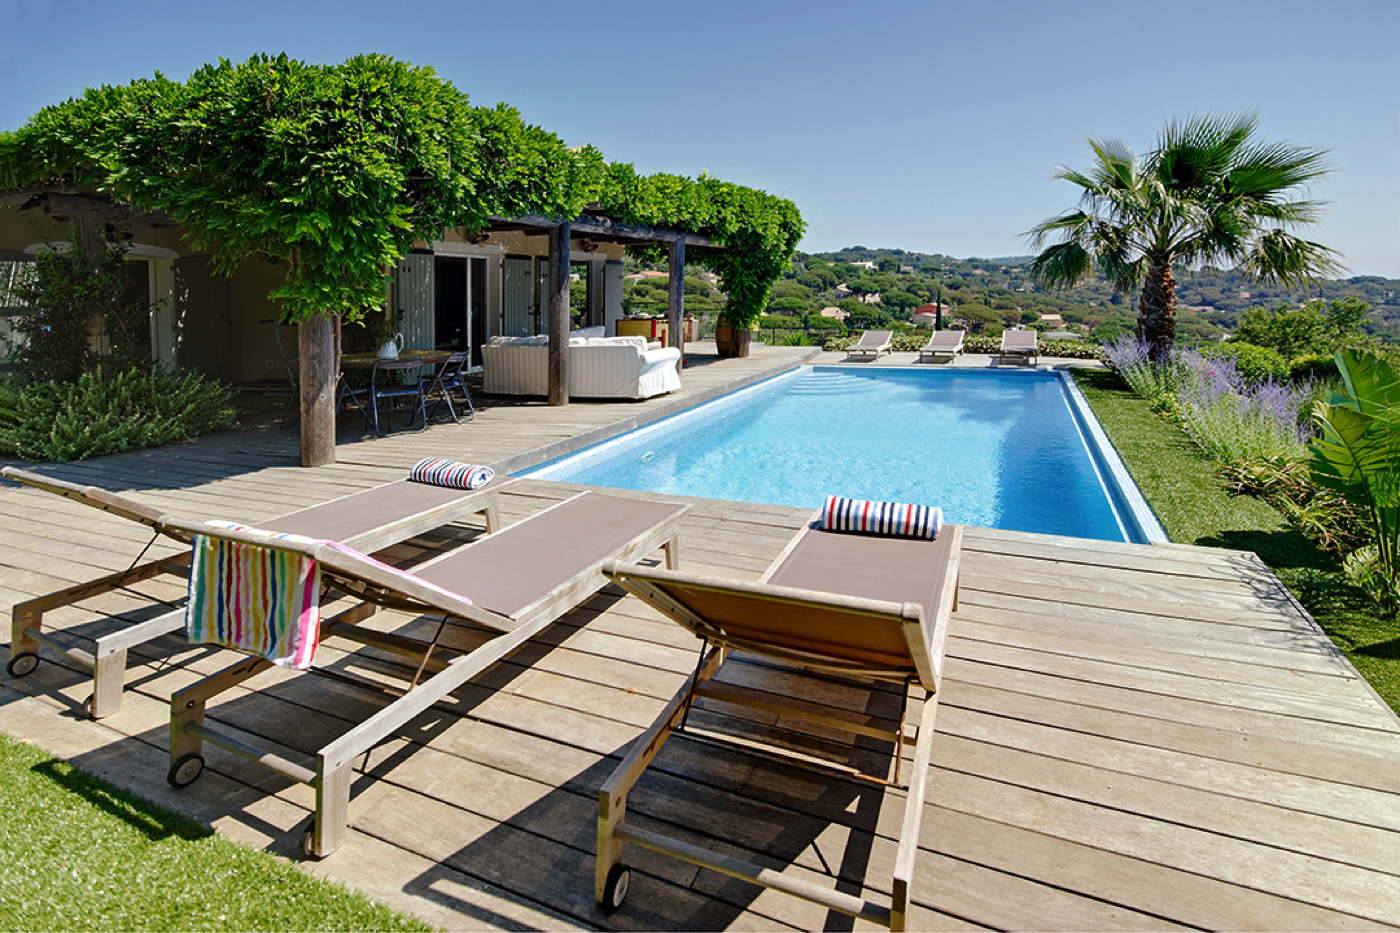 Beachfront holiday rental villa with pool Côte d'Azur France